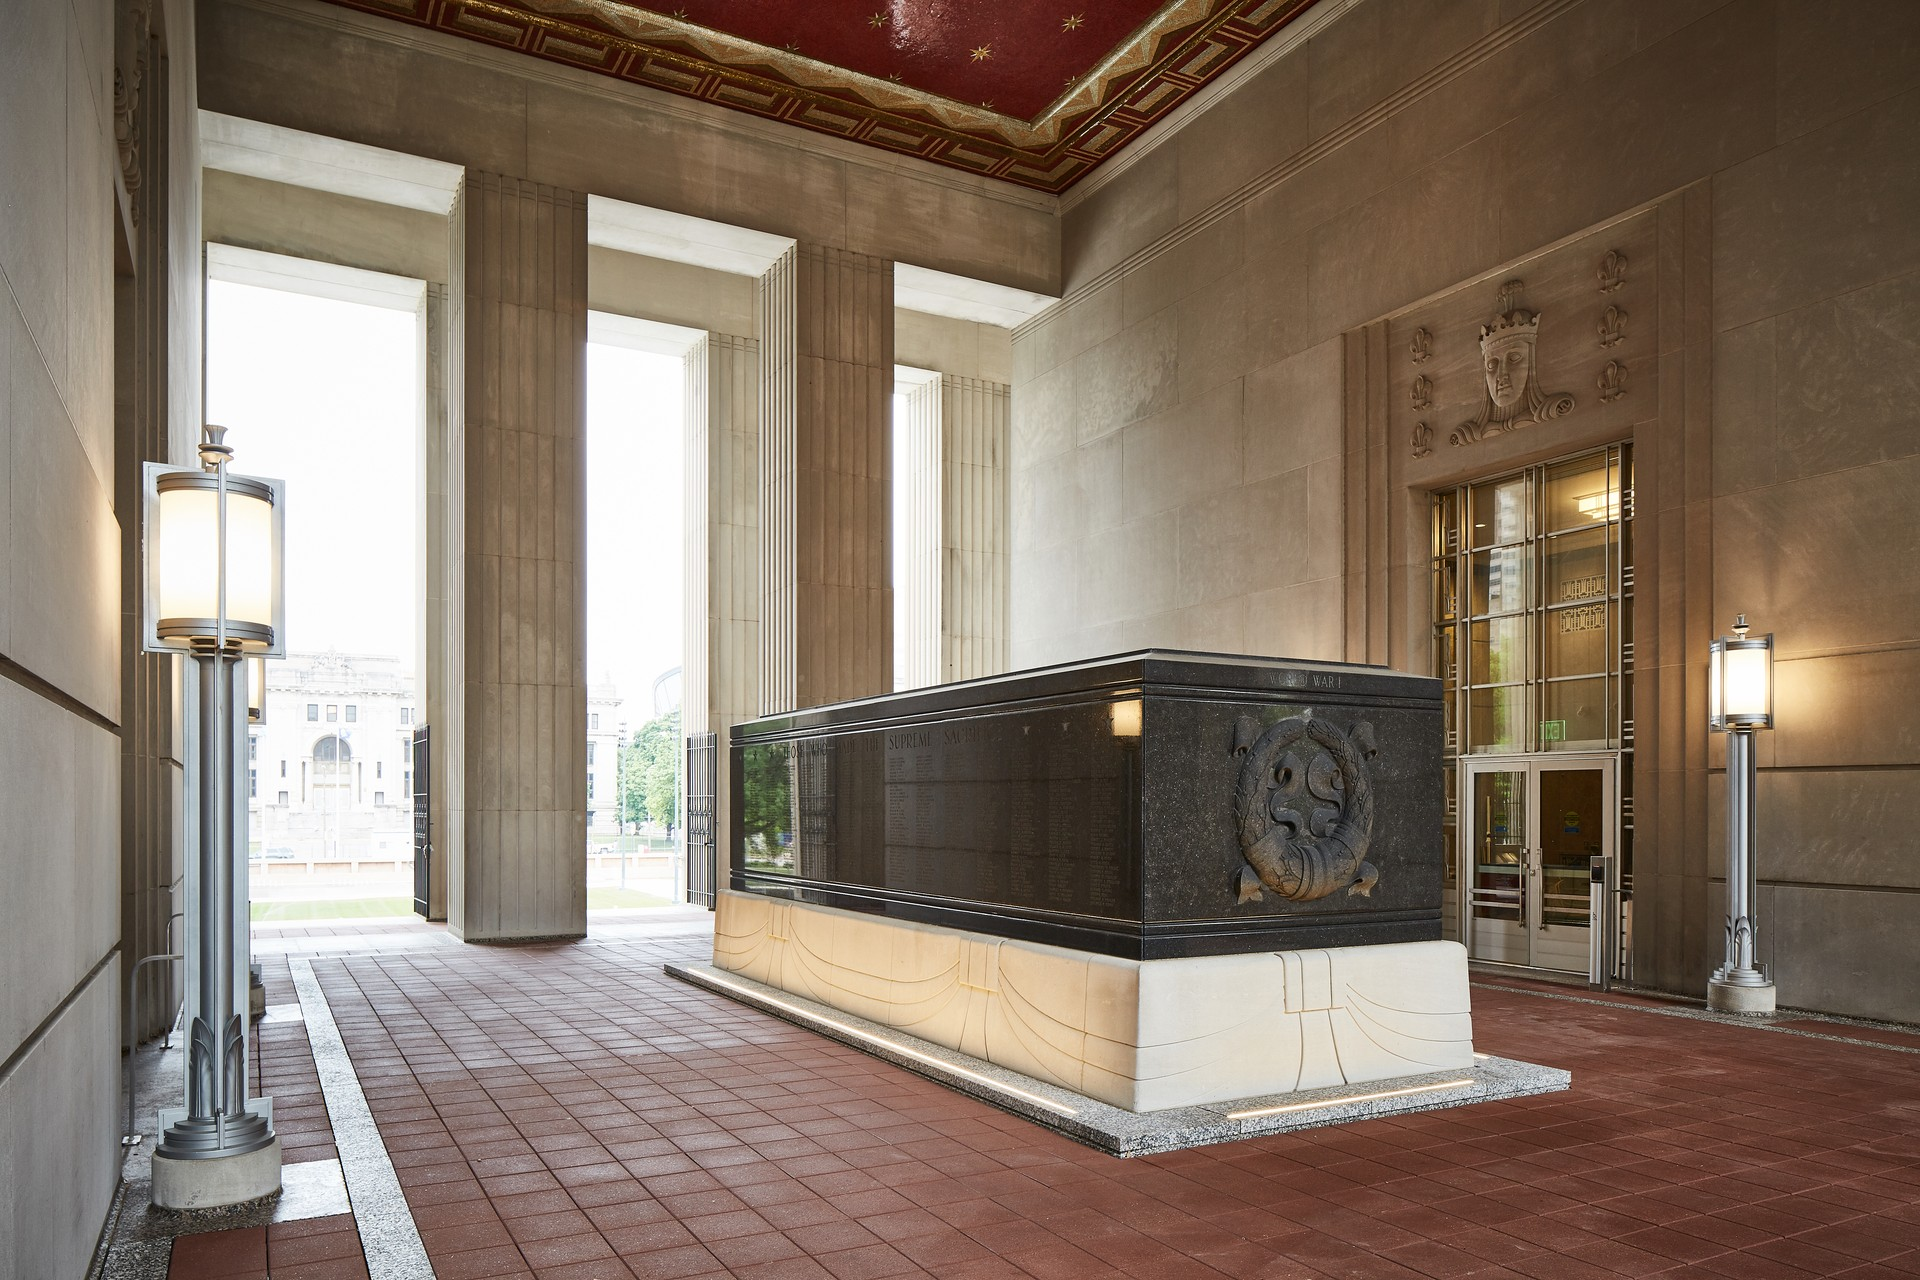 Cenotaph in the Loggia and Gold Star Mothers Mosaic